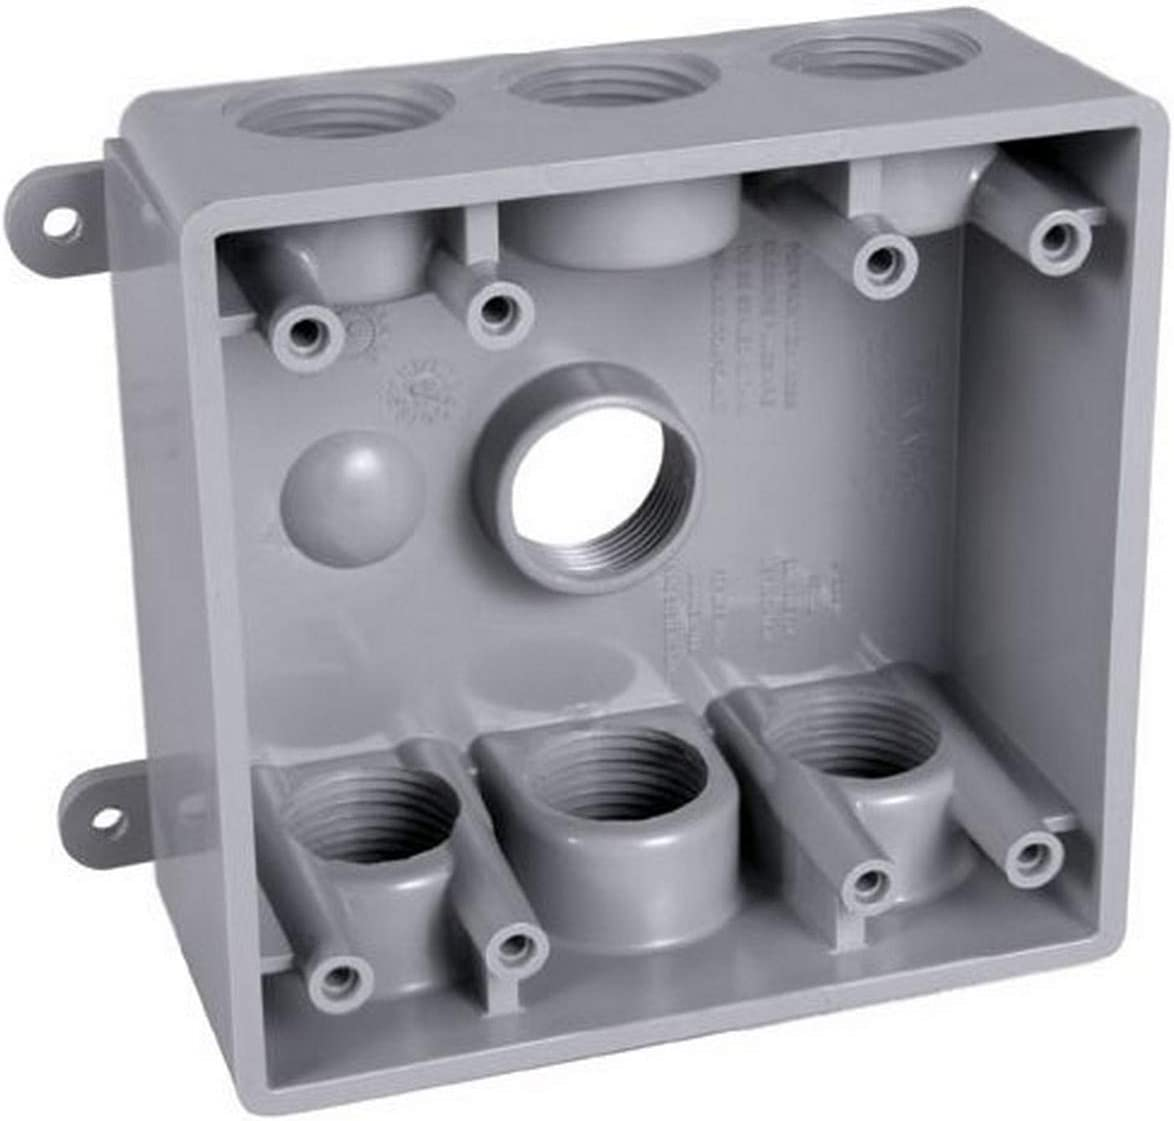 Hubbell Bell Pdb77550gy Two Gang Weatherproof Box Seven 1 2 Or 3 4 Inch Threaded Outlets Gray Finish Electrical Outlet Boxes Amazon Com